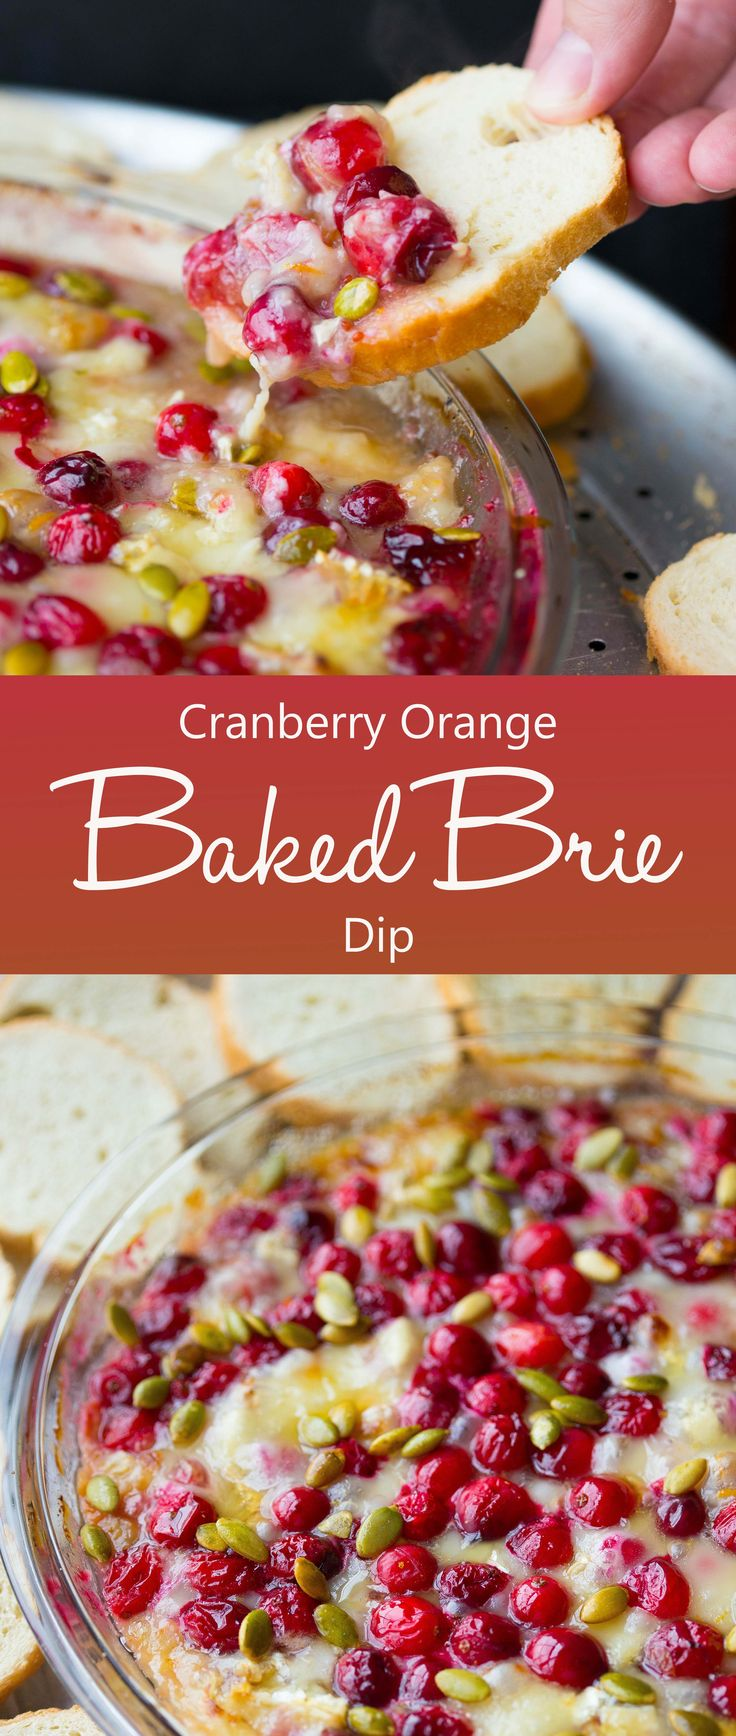 Cranberry orange baked brie dip is a super easy, fun, and festive holiday appetizer recipe that's perfect for your Thanksgiving or Christmas feast!